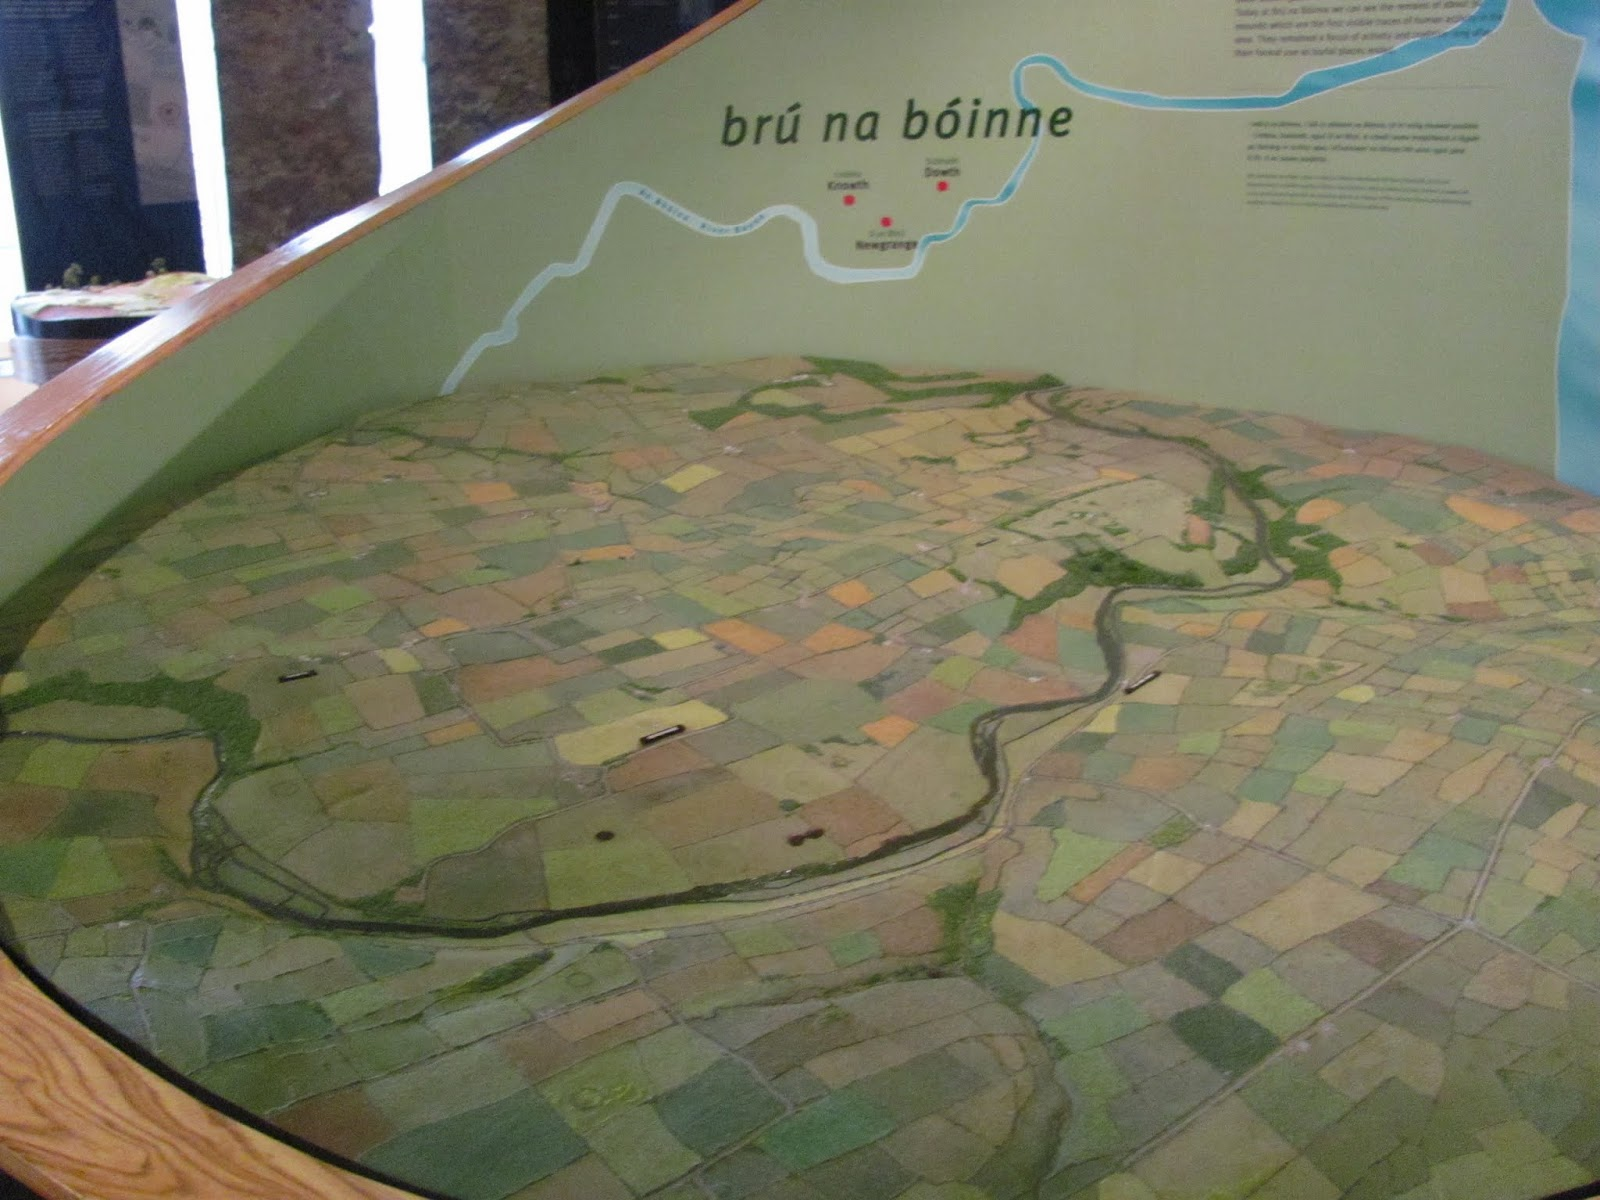 Valley Diorama Bru Na Boinne, Co. Meath Ireland